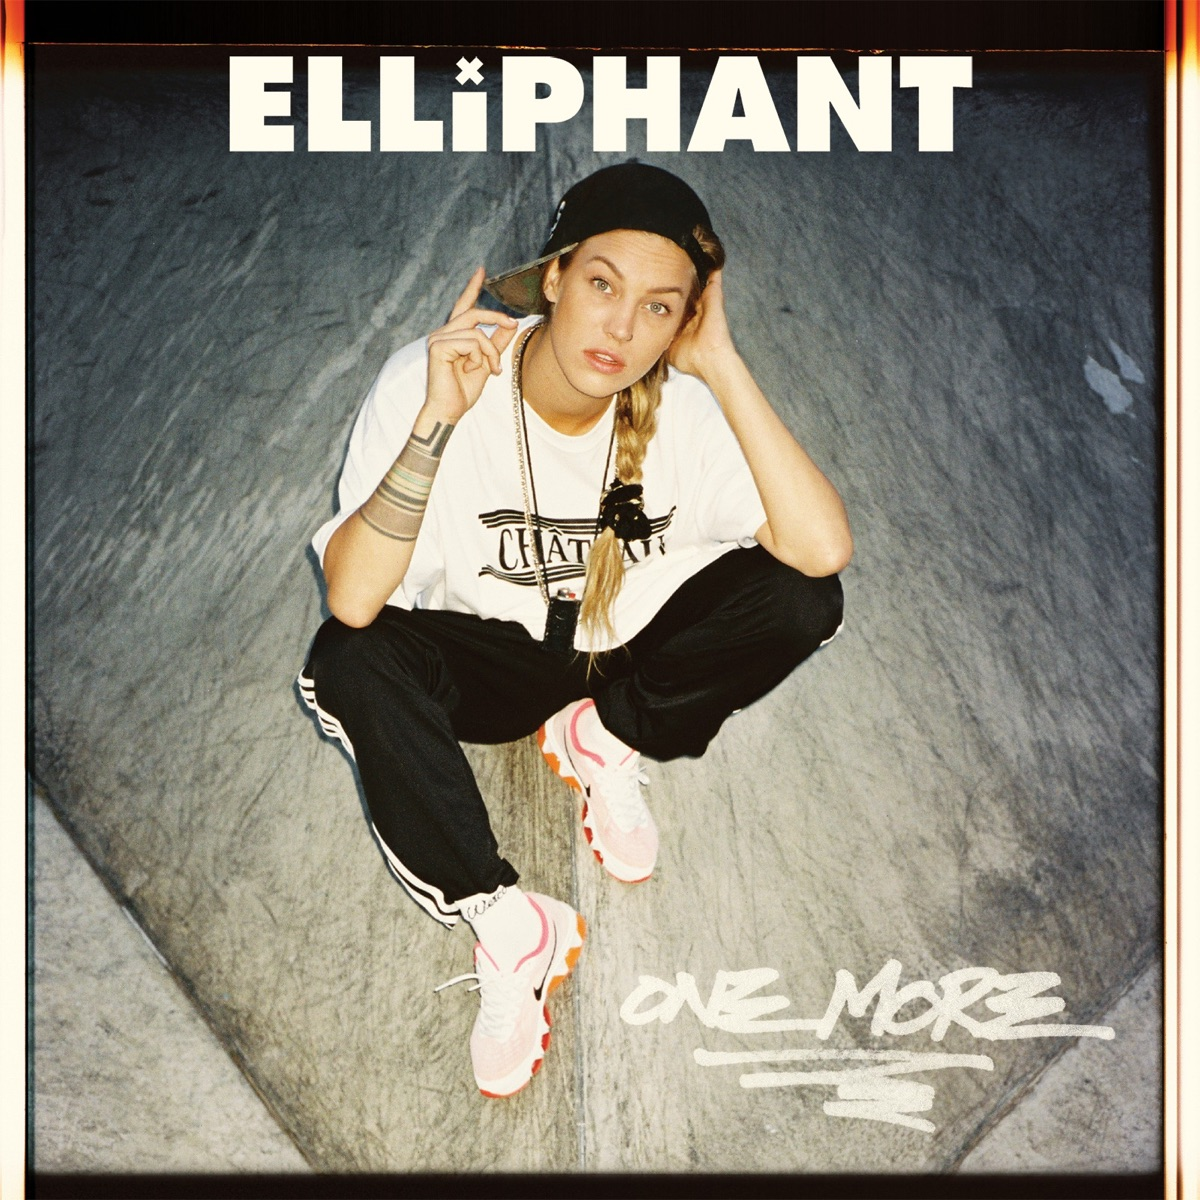 One More - EP Elliphant CD cover